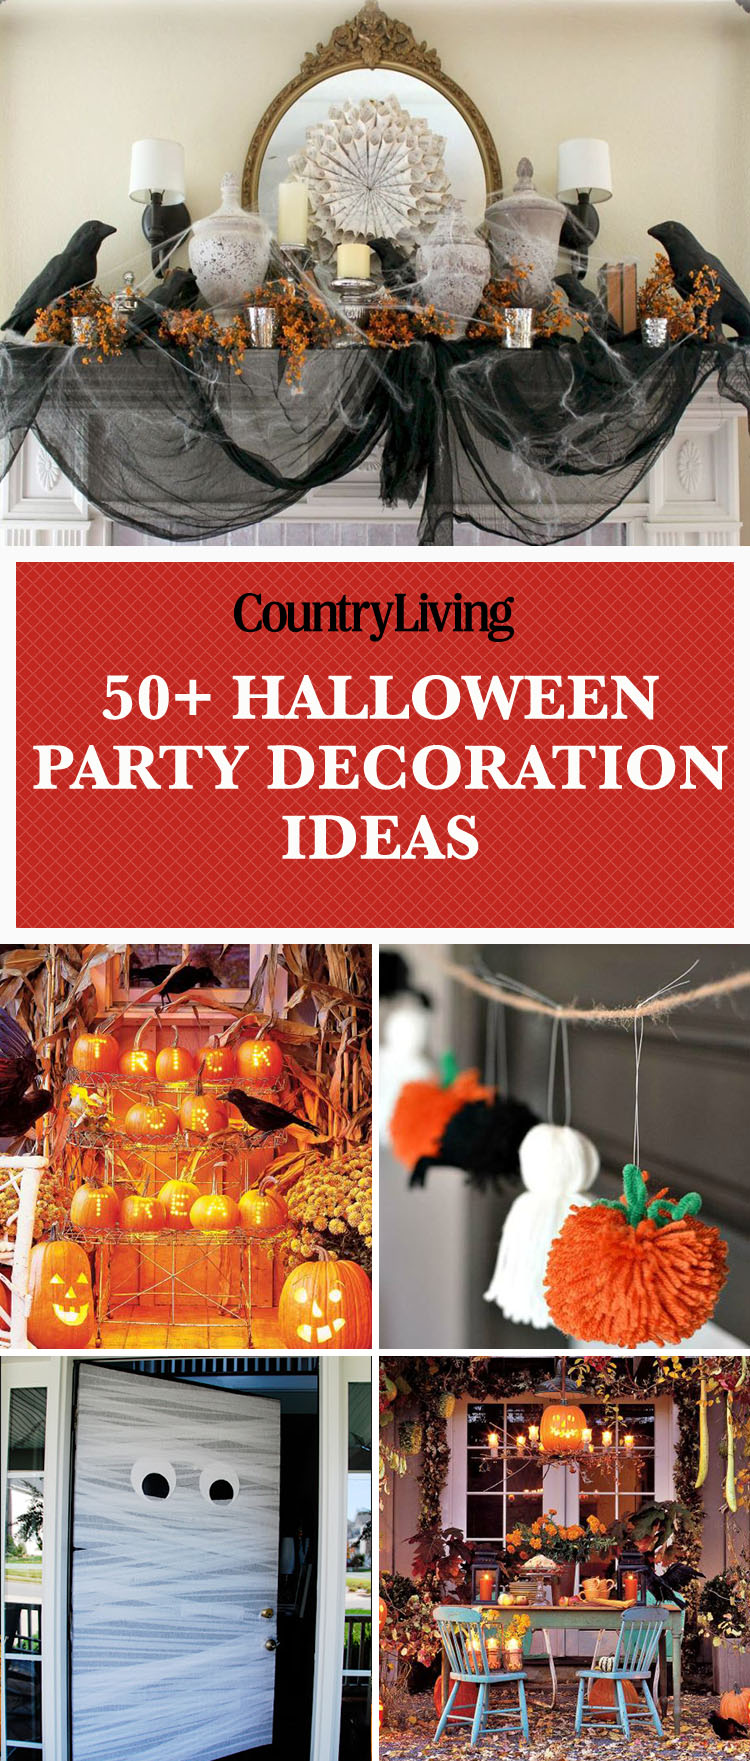 56 fun halloween party decorating ideas spooky halloween party decor - Scary Halloween Party Decoration Ideas